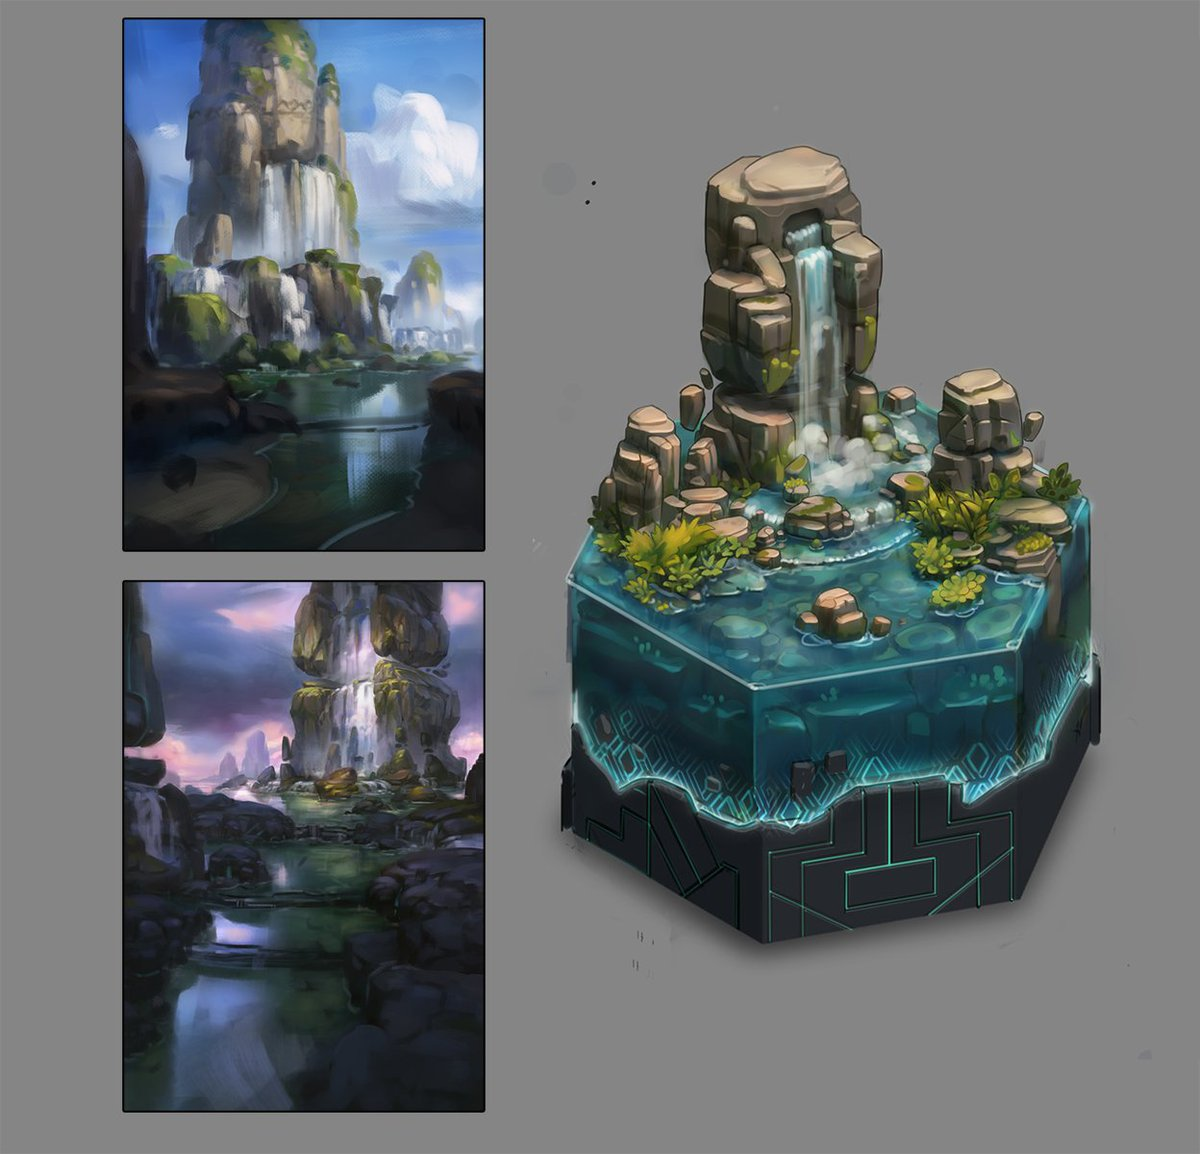 I really love working on isometric game art, there&#39;s something so comfortable in iso games that have been with me since Final Fantasy tactic advance &lt;3   Anyway! More Iso tile for Biome!   #isometric #gamedev #IndieDev <br>http://pic.twitter.com/Vtp7y3BuFC